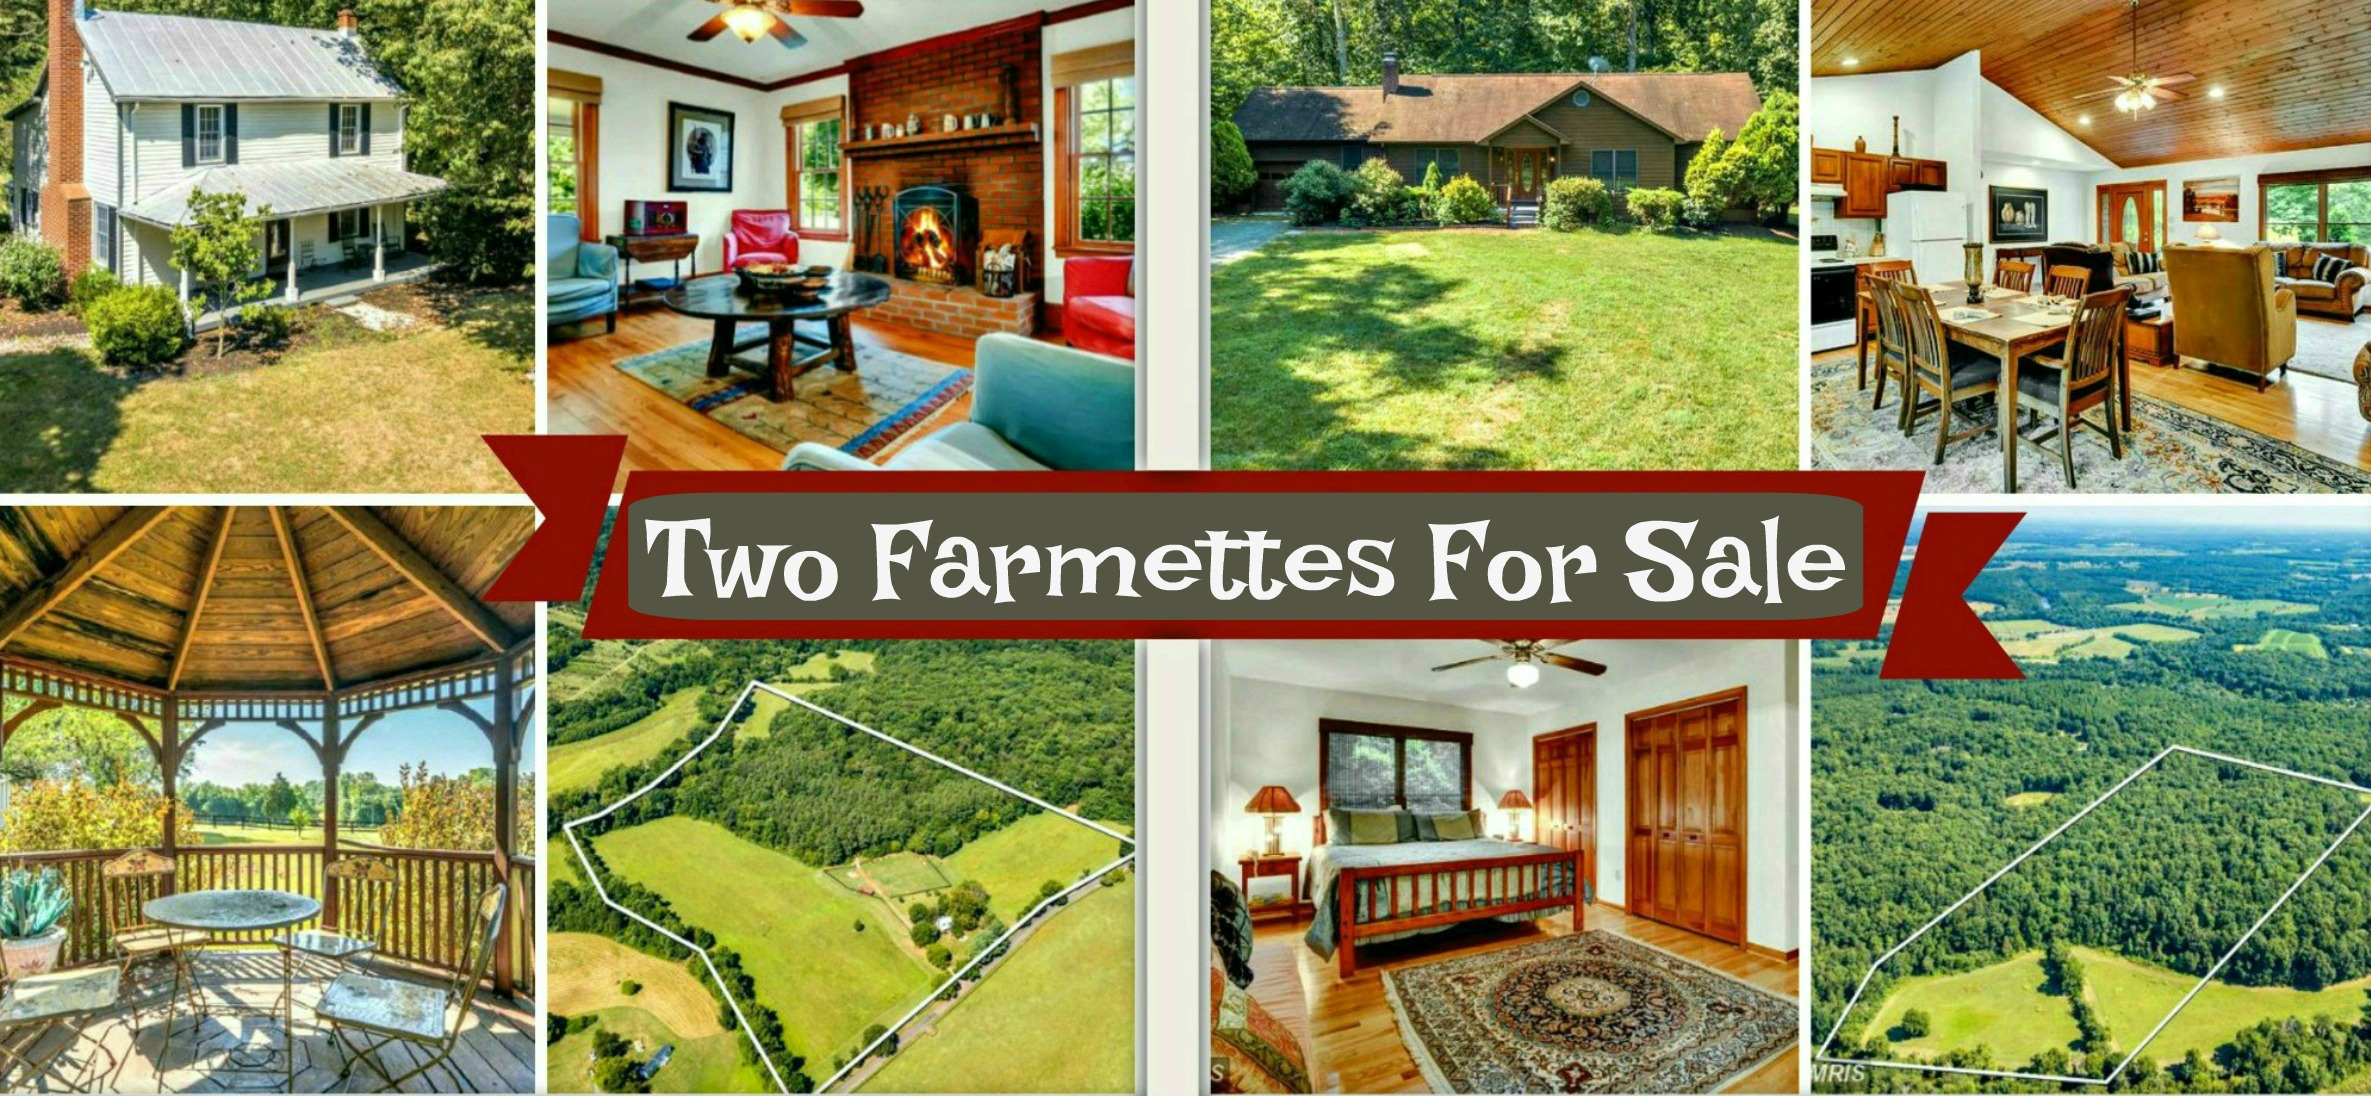 Farmette for Sale in Culpeper, Virginia